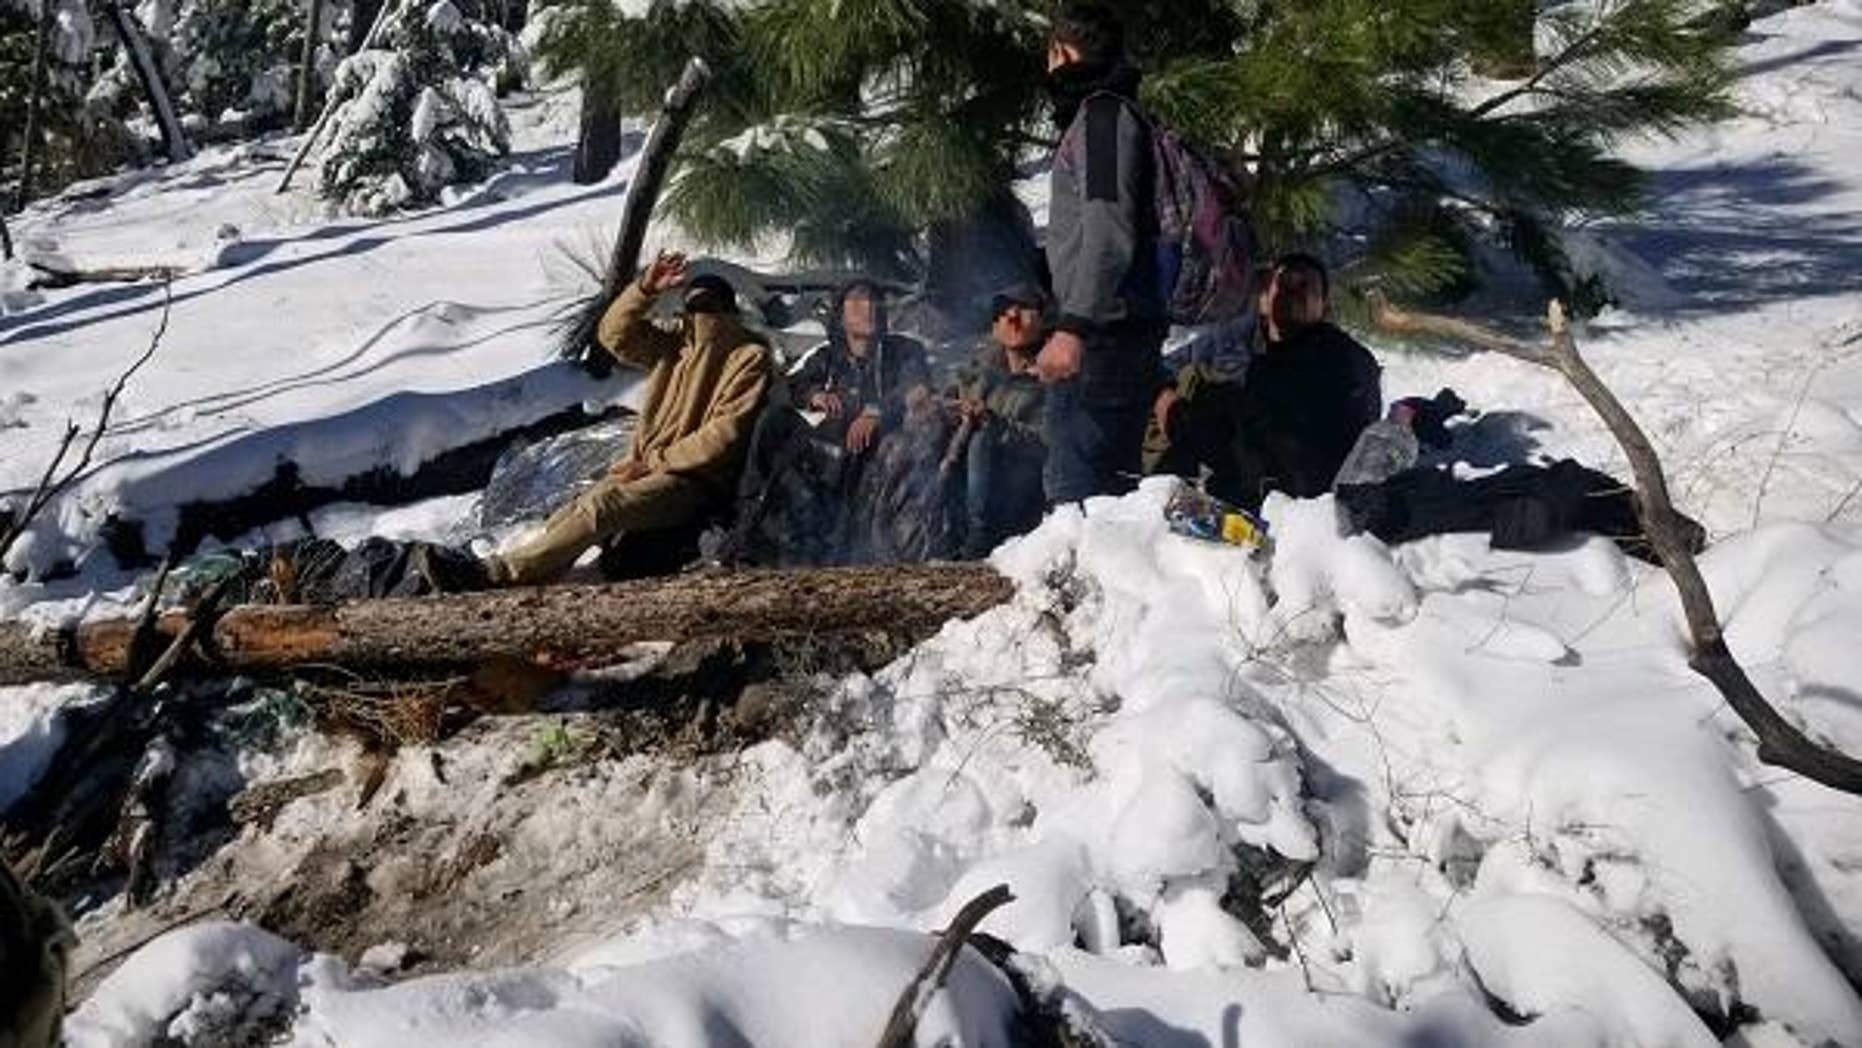 Crews were called to rescue illegal aliens who had become stranded atop a snowcapped mountain in southern Arizona.